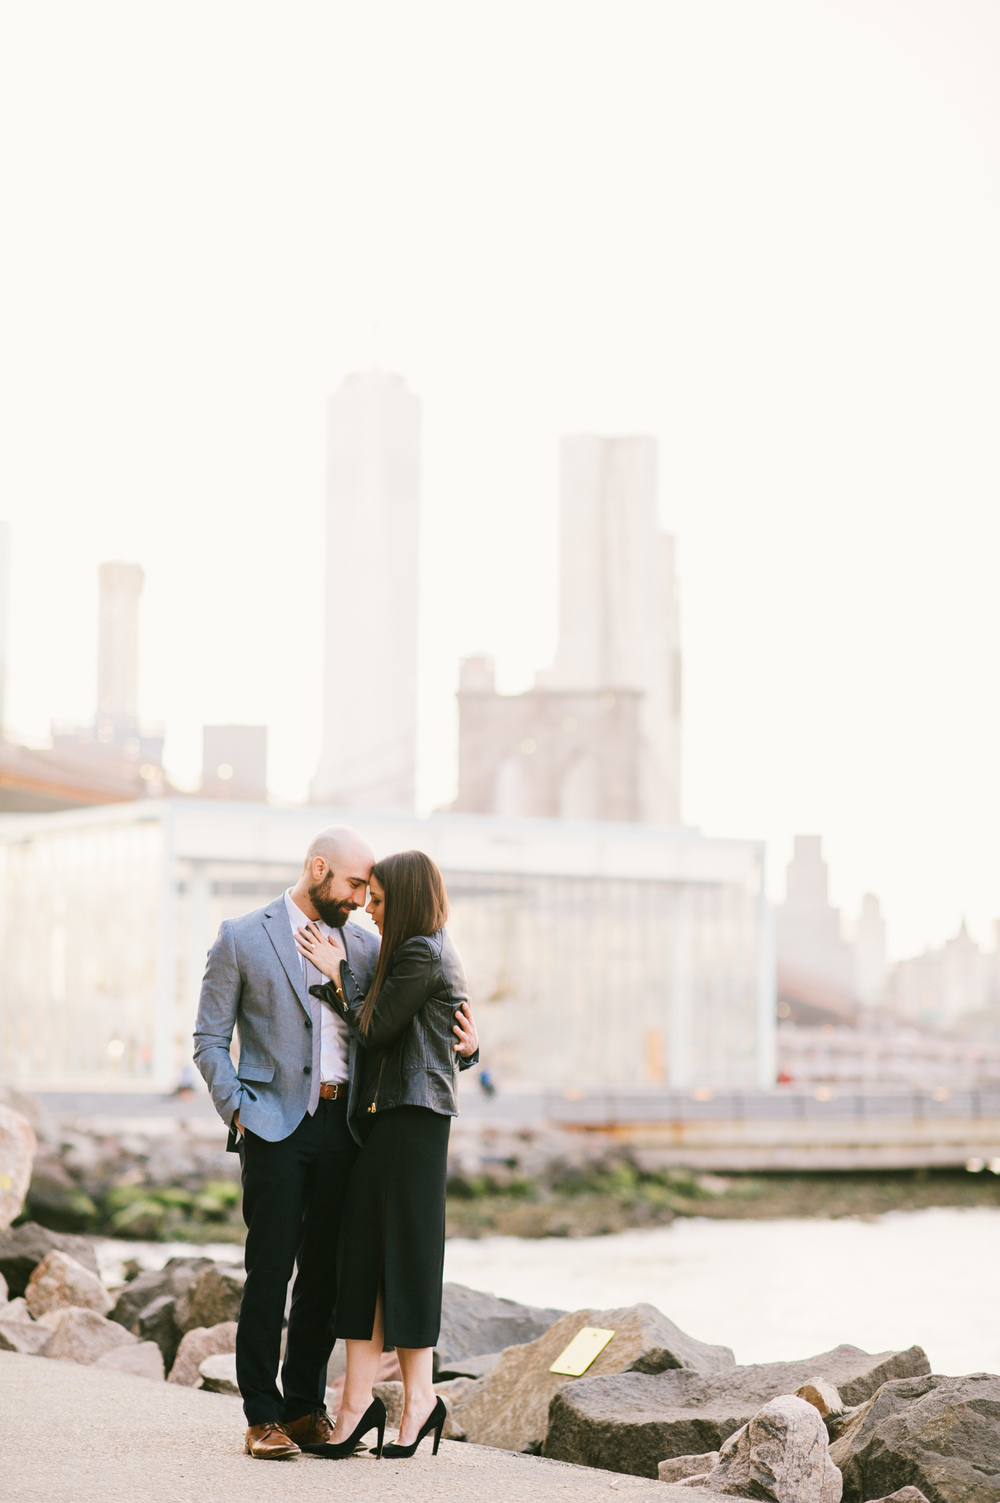 Dumbo.BrooklynBridge.Engagements.Proposal.DMB2.jpg